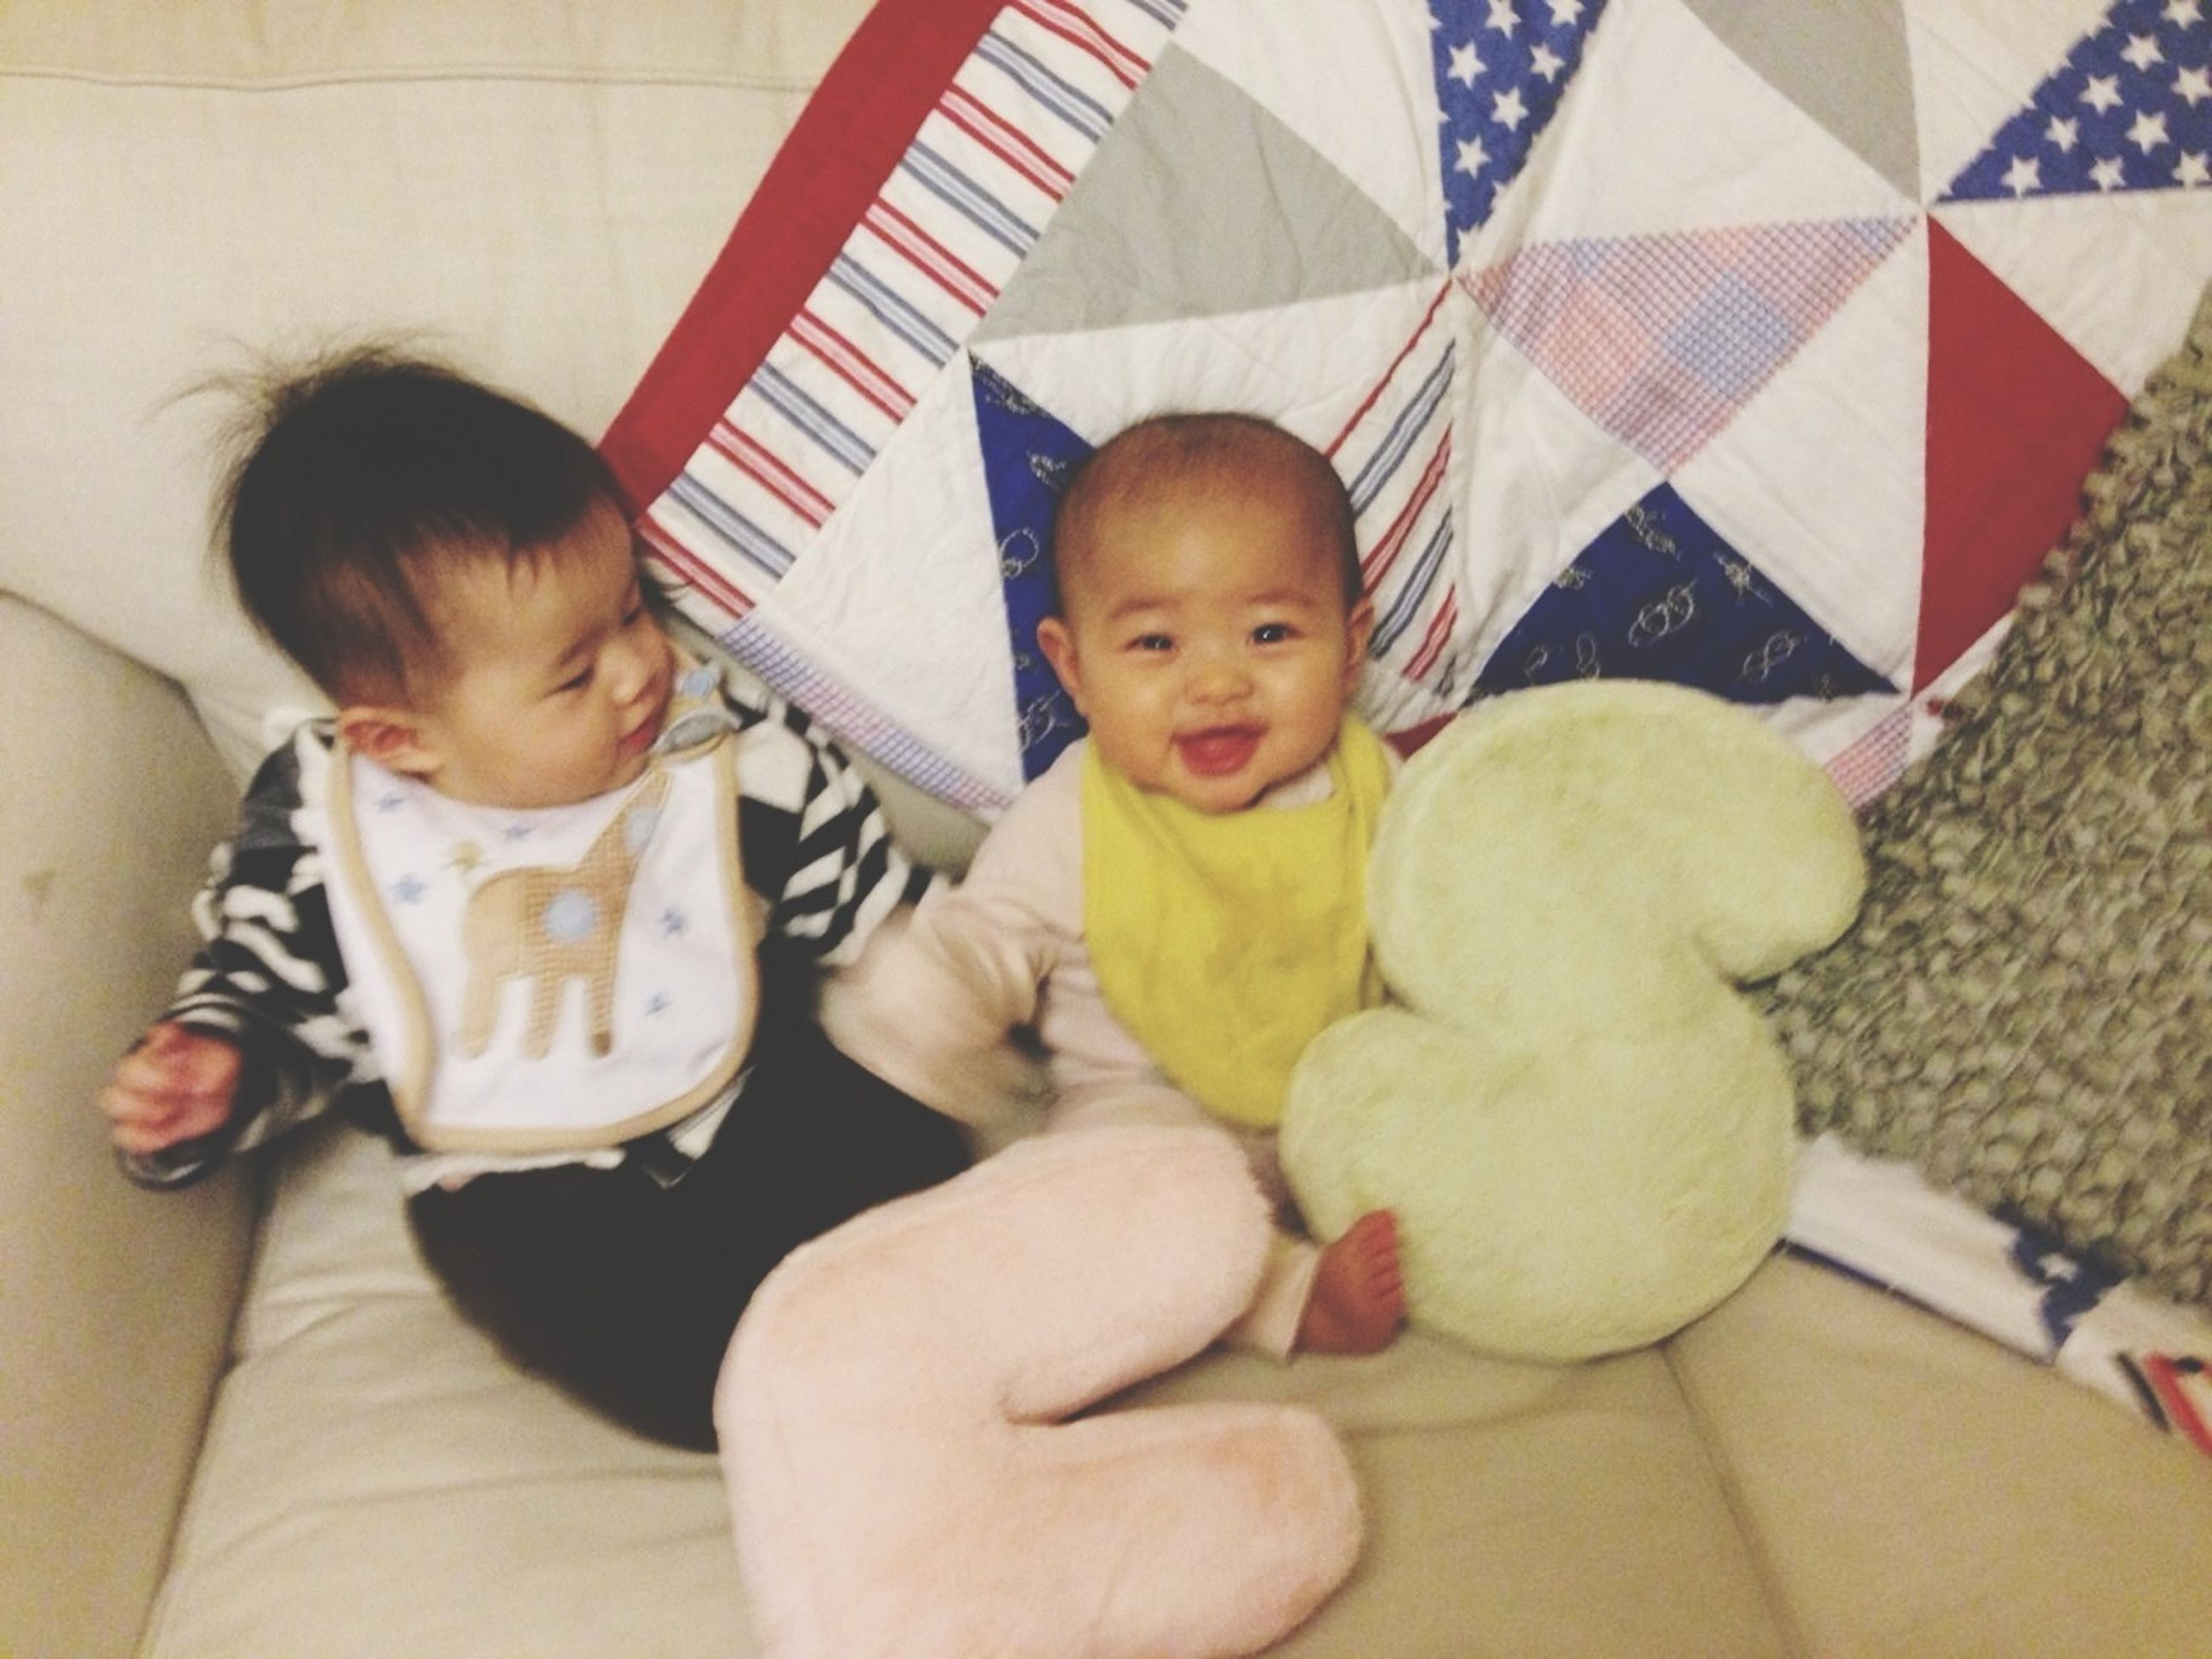 childhood, lifestyles, elementary age, person, indoors, leisure activity, boys, innocence, girls, togetherness, cute, bonding, casual clothing, family, toddler, babyhood, sitting